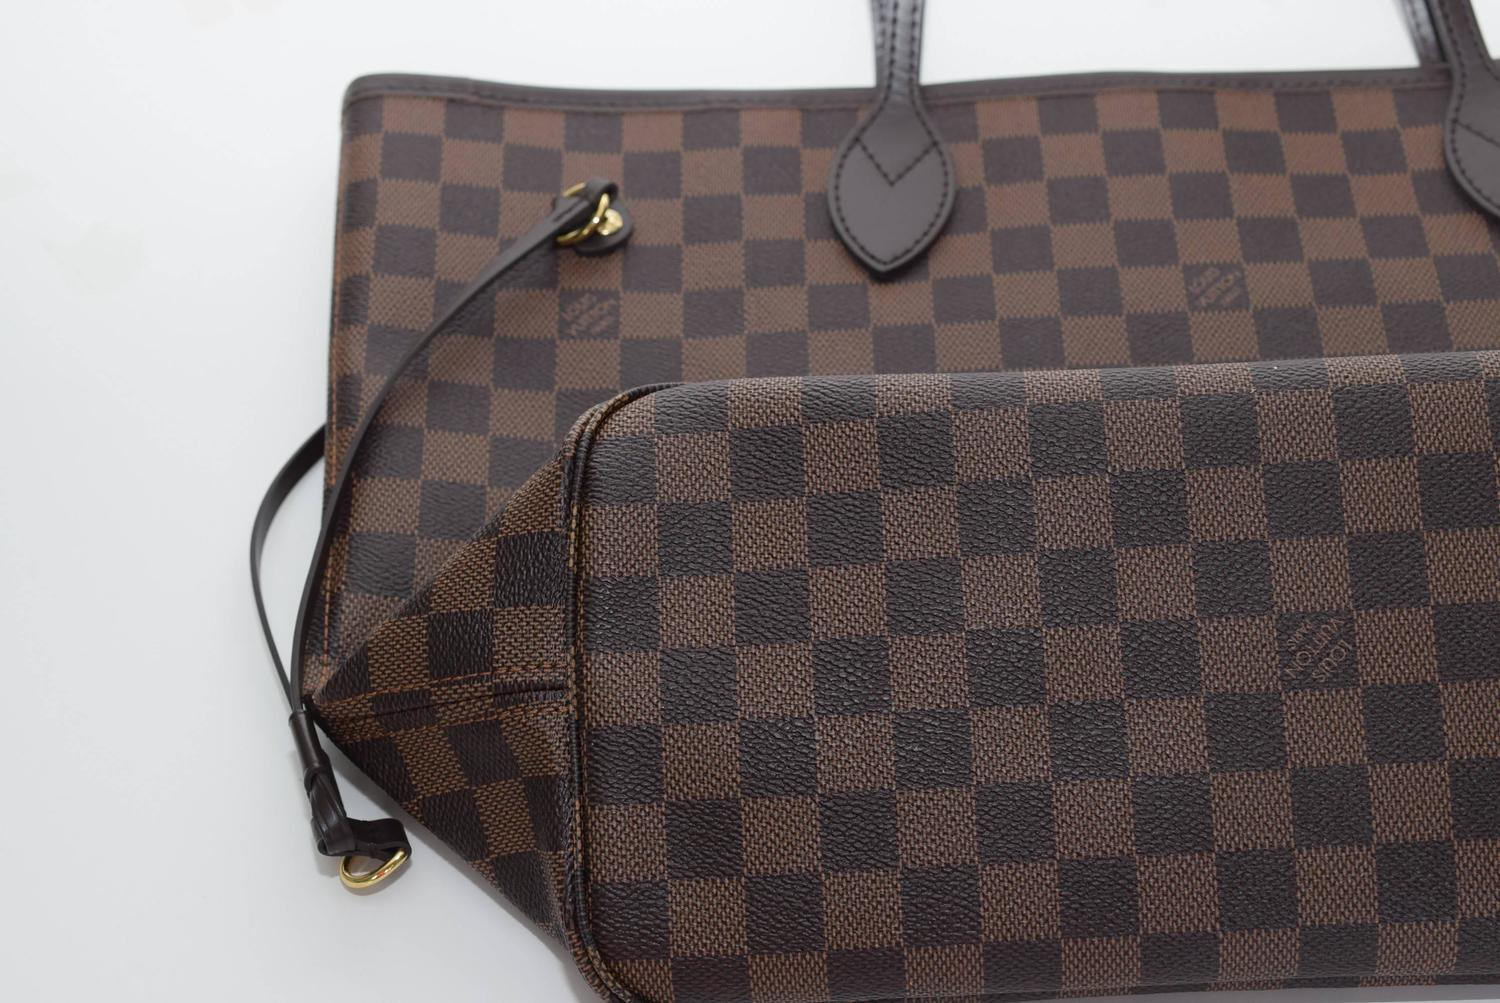 Louis vuitton date code check in Sydney